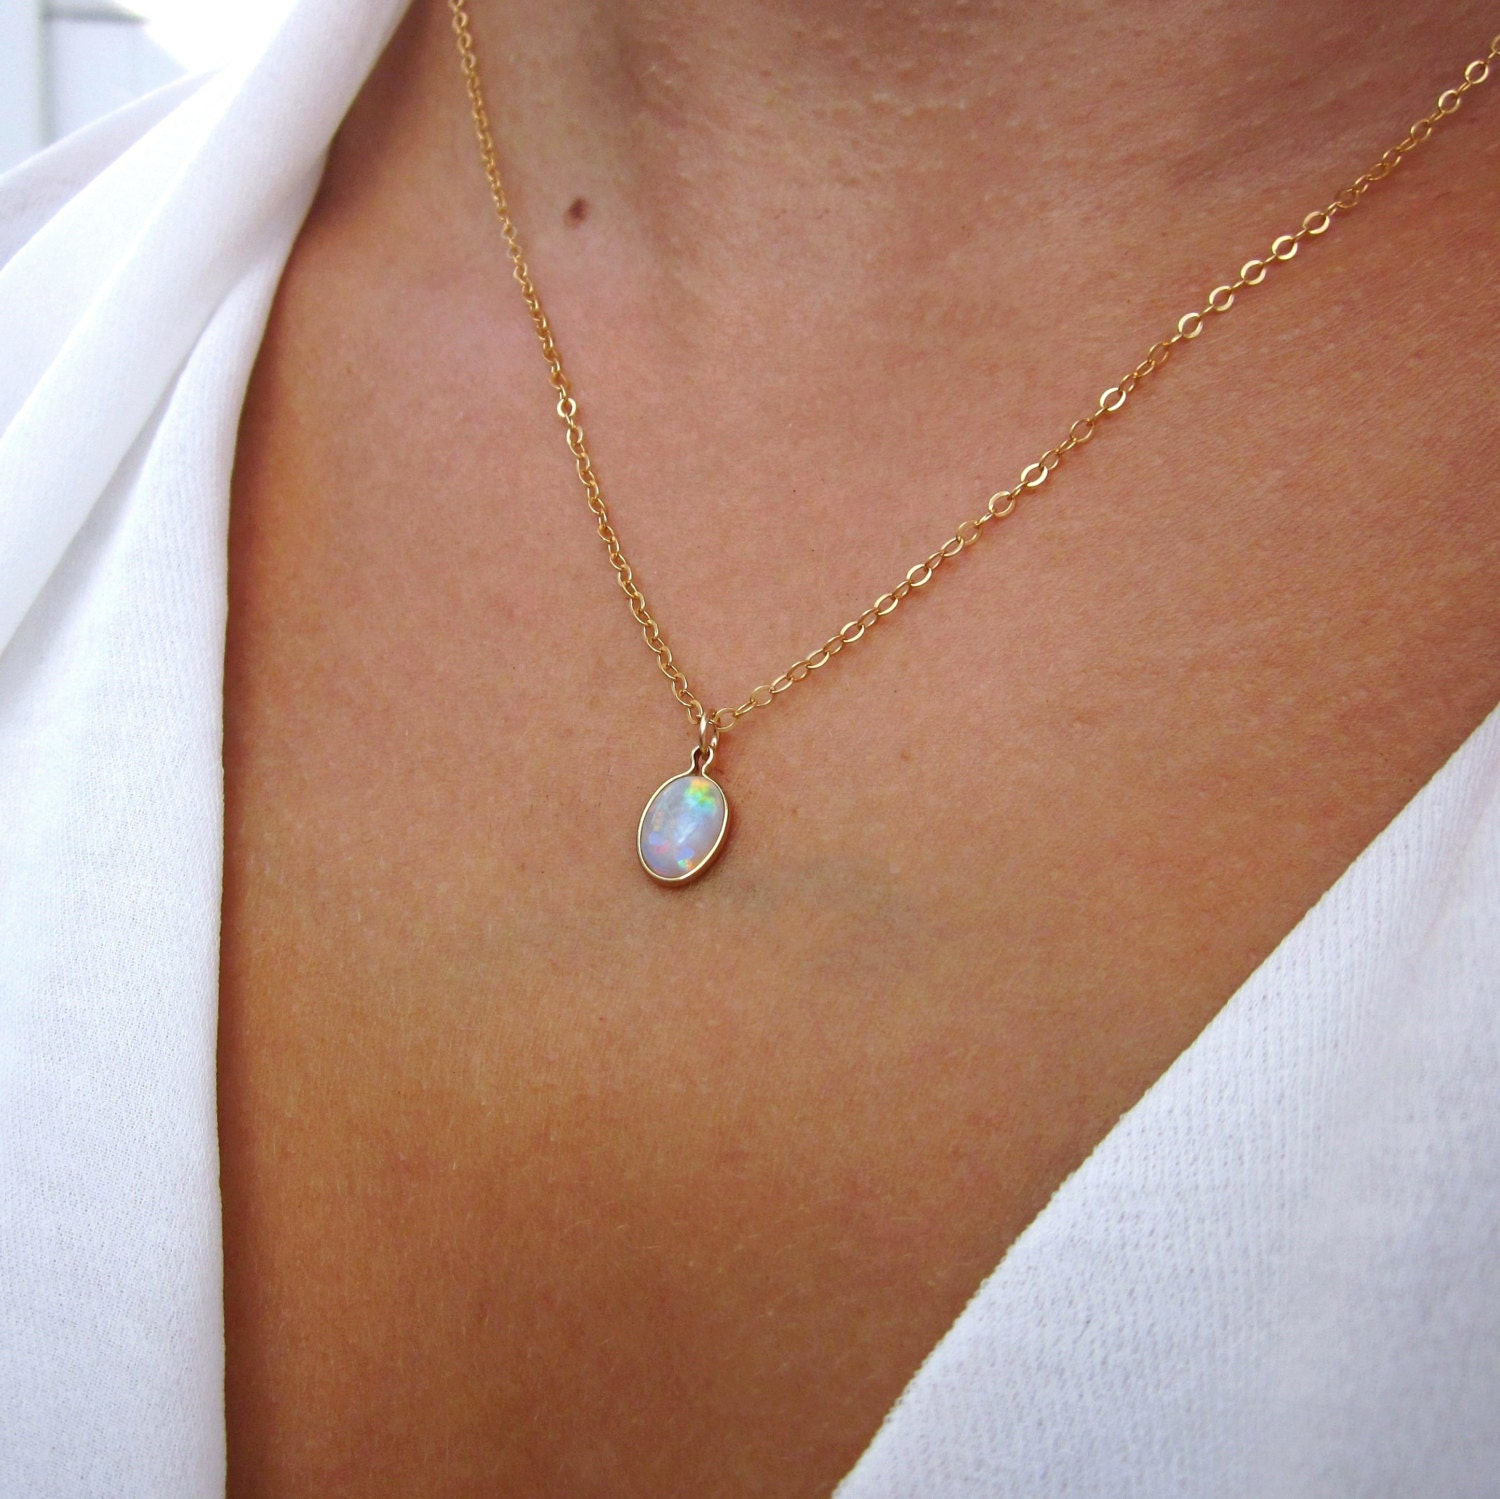 Opal Necklace October Birthstone Opal Jewelry Opal Pendant. Box Lockets. French Engagement Rings. Five Diamond Engagement Rings. Tourbillon Watches. Silver Bangle Bracelets With Stones. Fishing Wedding Rings. Diana Wedding Rings. November Birthstone Wedding Rings